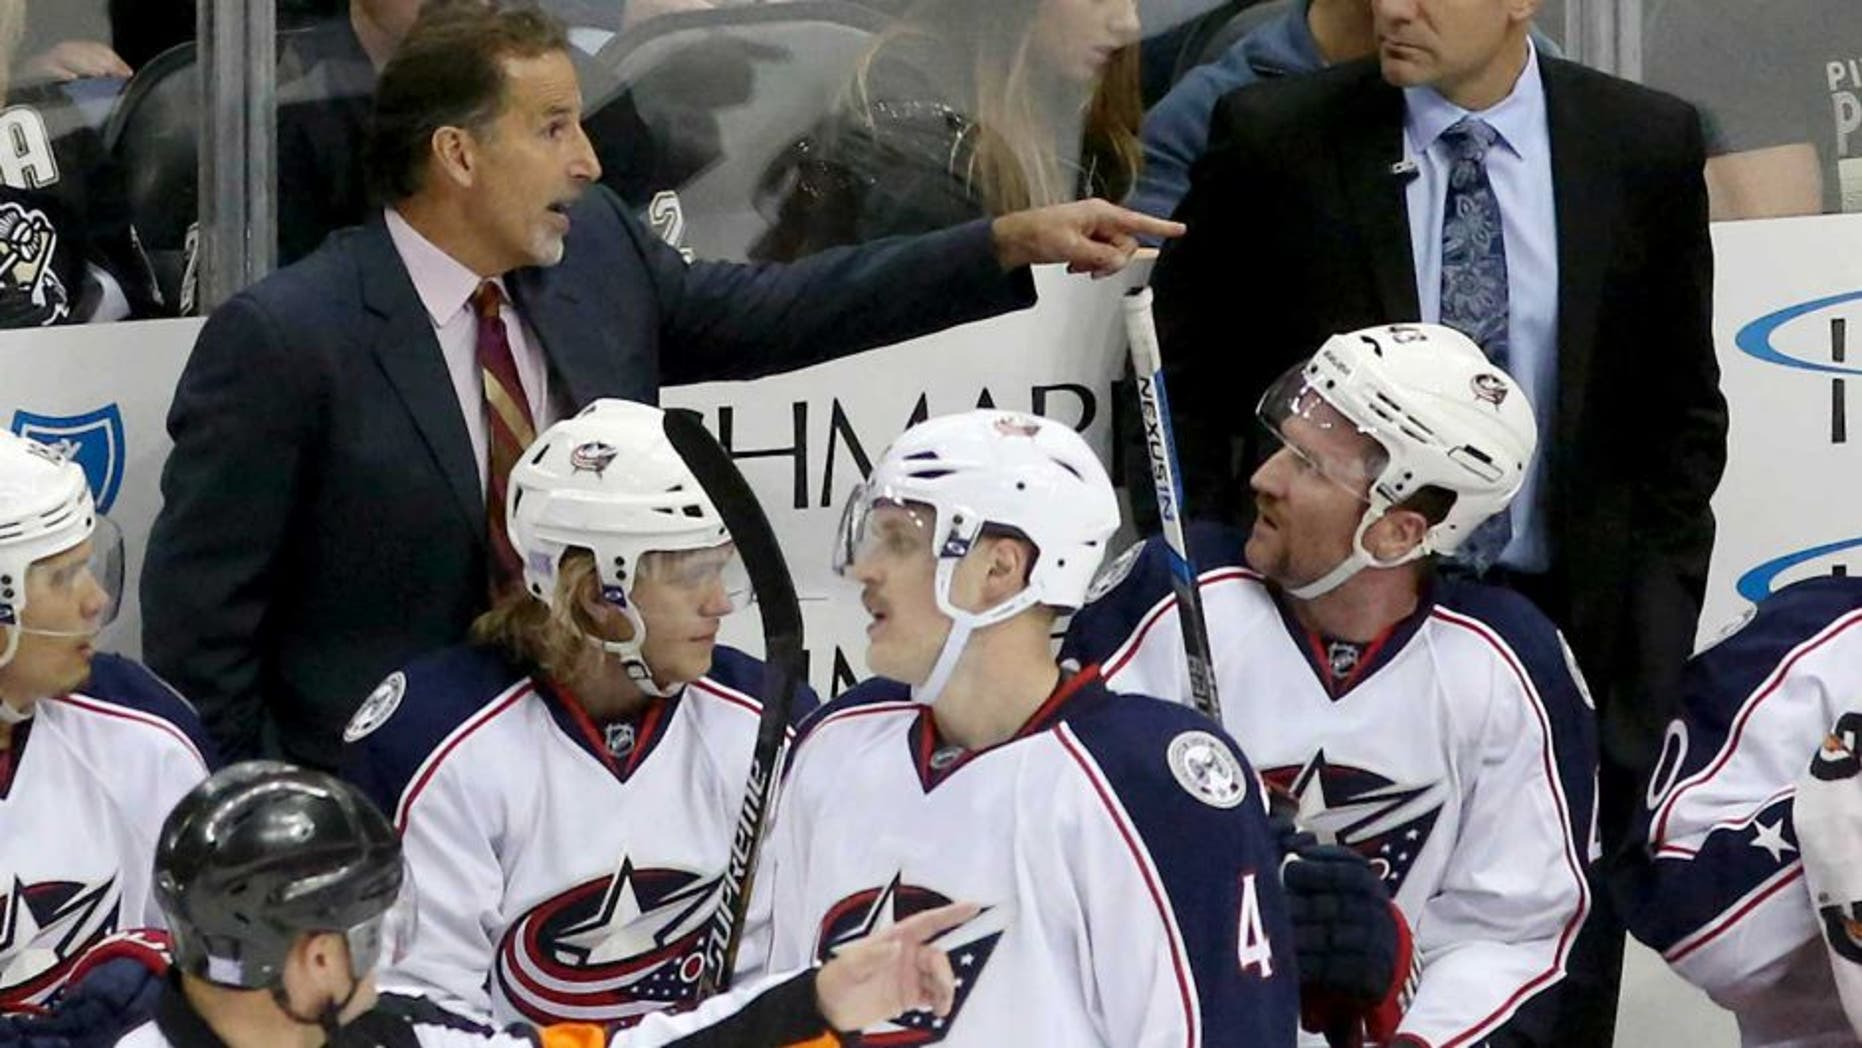 Nov 13, 2015; Pittsburgh, PA, USA; Columbus Blue Jackets head coach John Tortorella (left rear) gestures during a time-out against the Pittsburgh Penguins in the second period at the CONSOL Energy Center. The Blue Jackets won 2-1. Mandatory Credit: Charles LeClaire-USA TODAY Sports